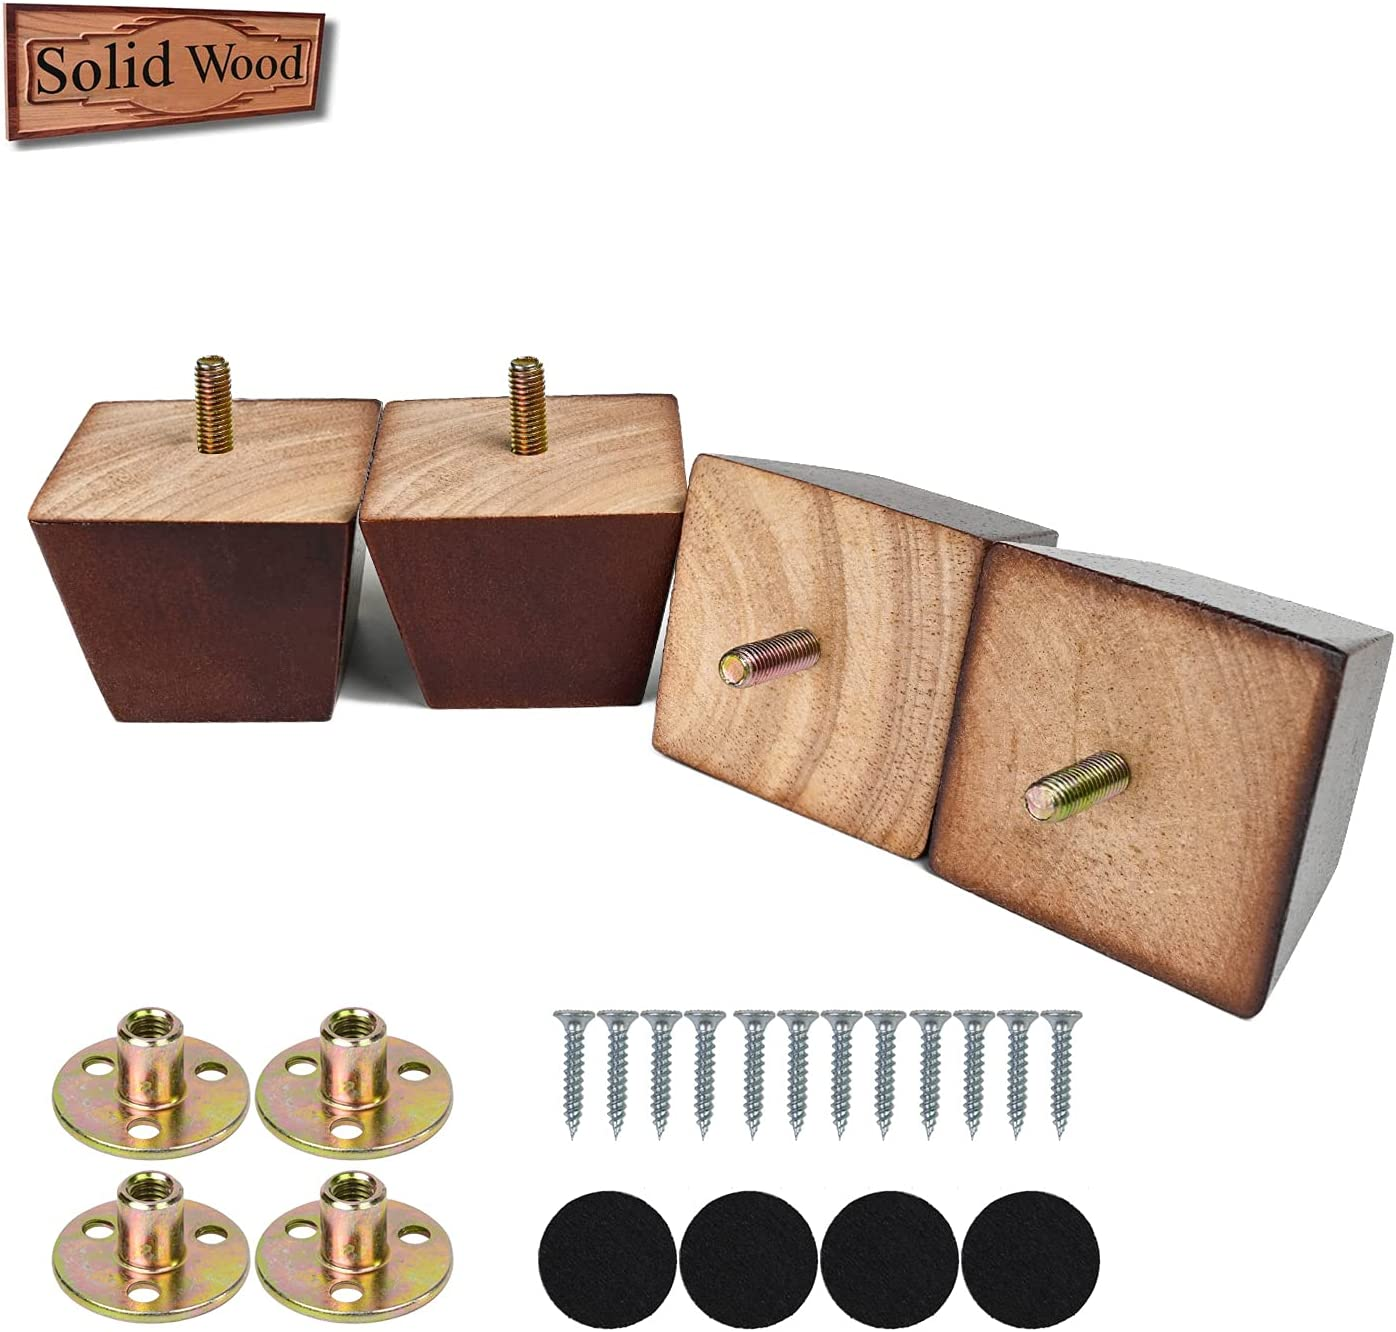 2 inch Sofa Legs Square Furniture Feet Wood Replacement Leg Set of 4 for Bed Couch Armchair Recliner with Pre-Drilled 5/16 Inch Bolt M8 & Mounting Plate & Screws